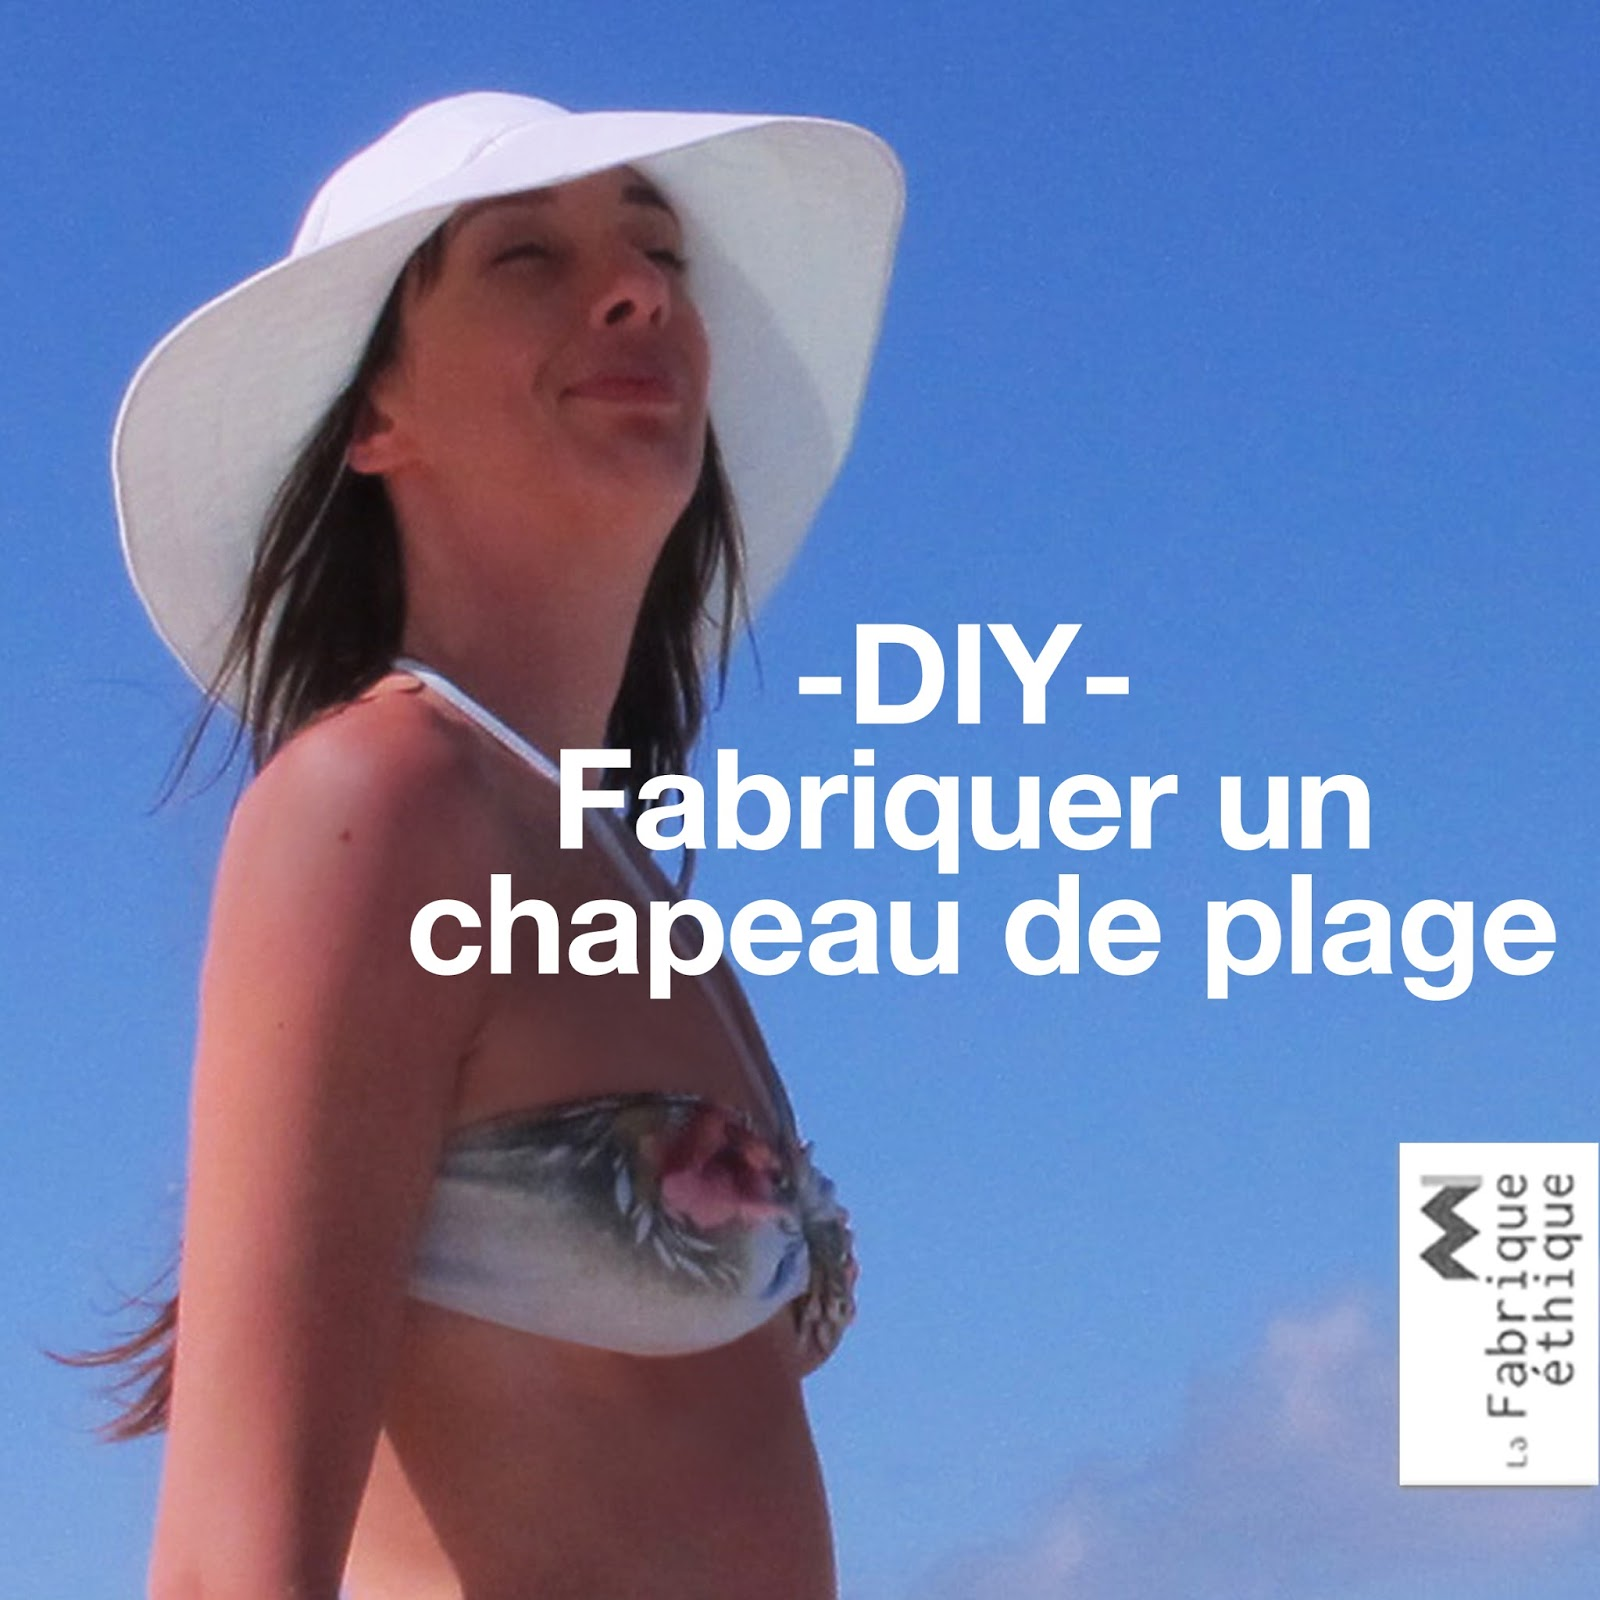 fabriquer un chapeau de plage blogue de couture diy de la fabrique thique. Black Bedroom Furniture Sets. Home Design Ideas